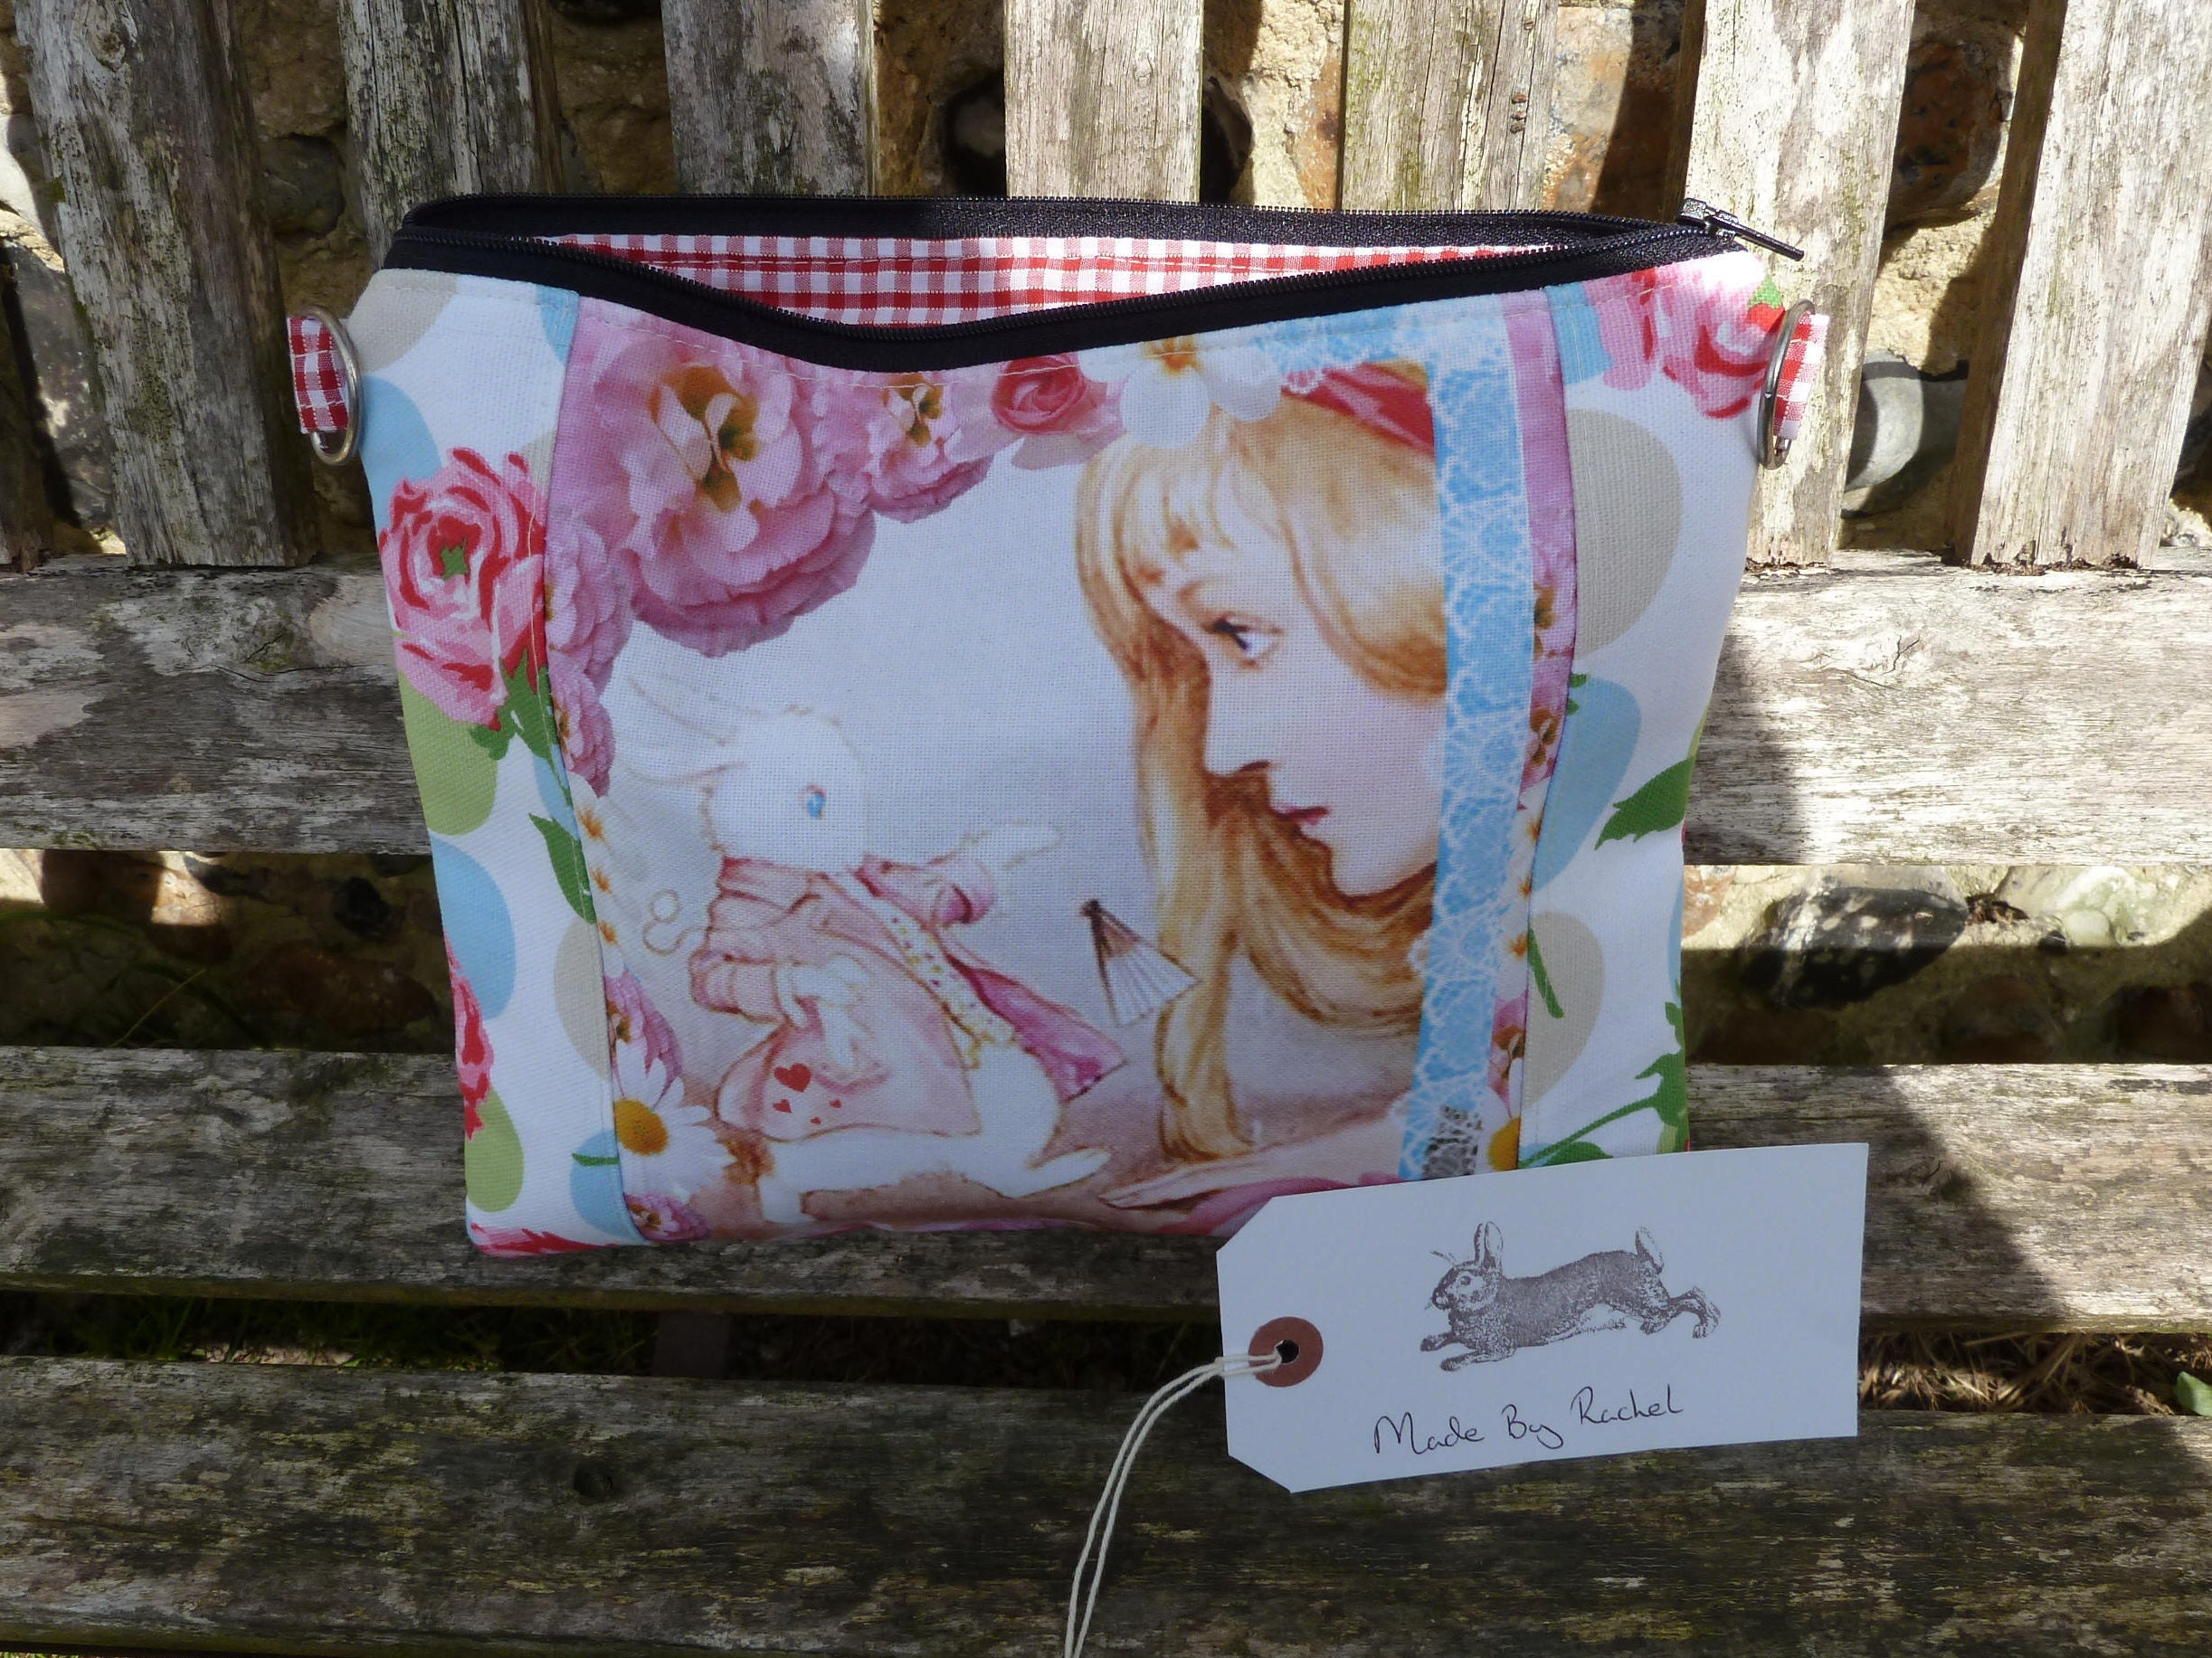 Handmade Makeup Bag Alice In Wonderland White Rabbit Fabric Cath Kidston Roses Fabric Pencil Case Purse Padded Clutch Lined